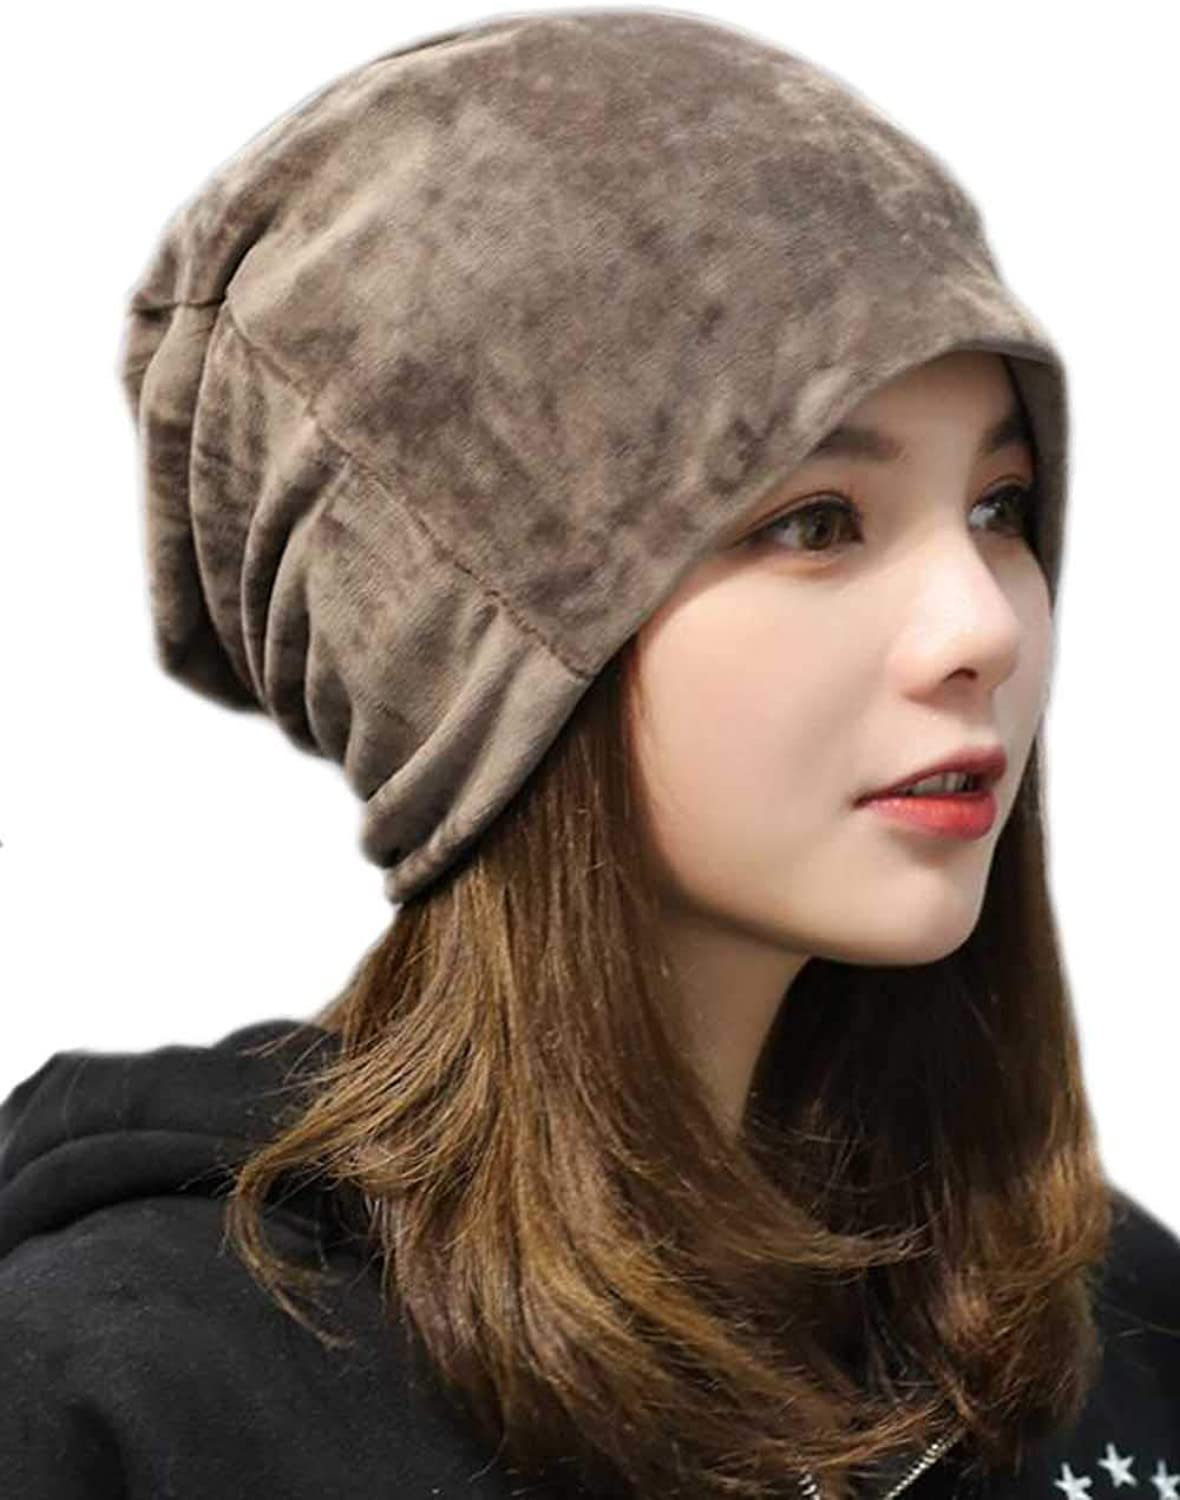 Jovono Hat for Women Winter Warm Hats Slouchy Pile Cap